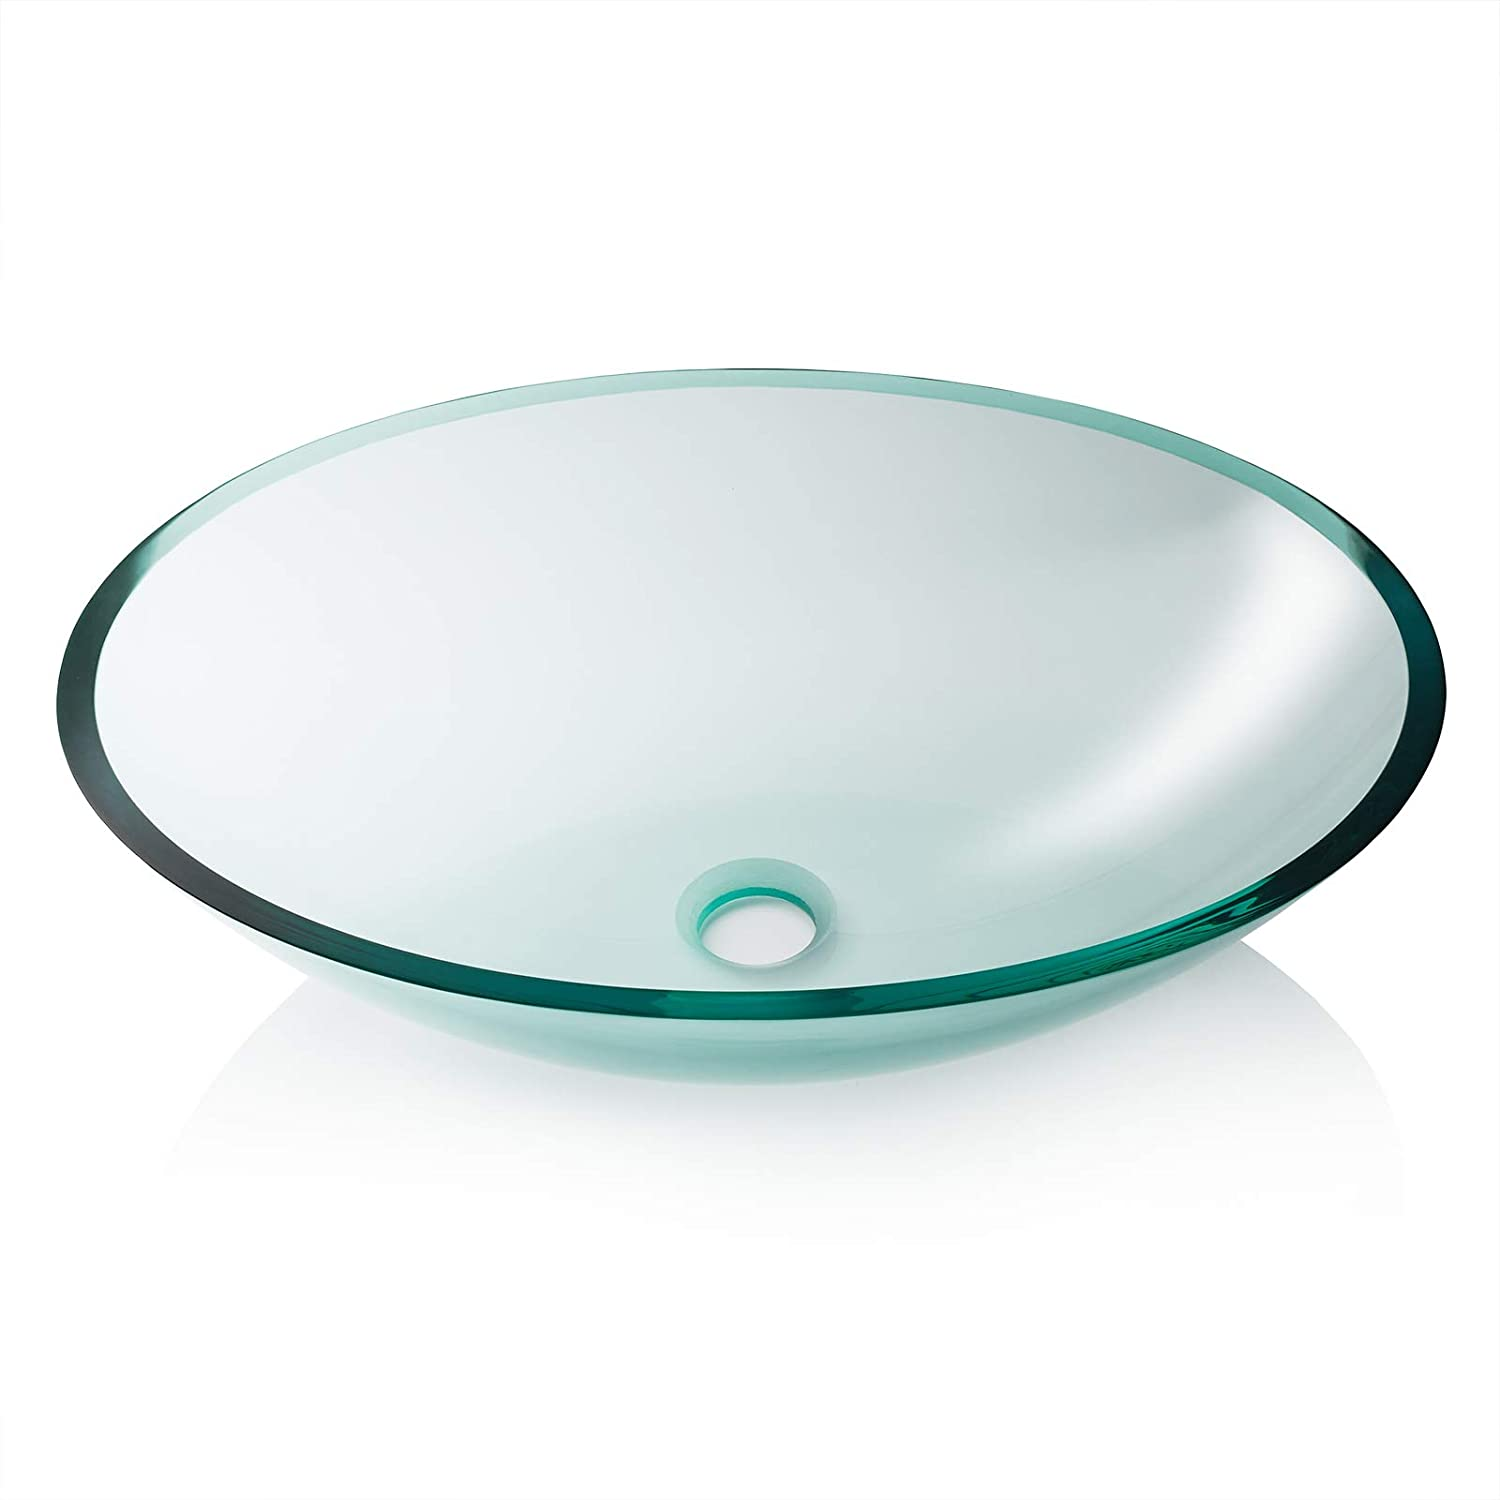 Miligore Modern Glass Vessel Sink – Above Counter Bathroom Vanity Basin Bowl – Oval Clear